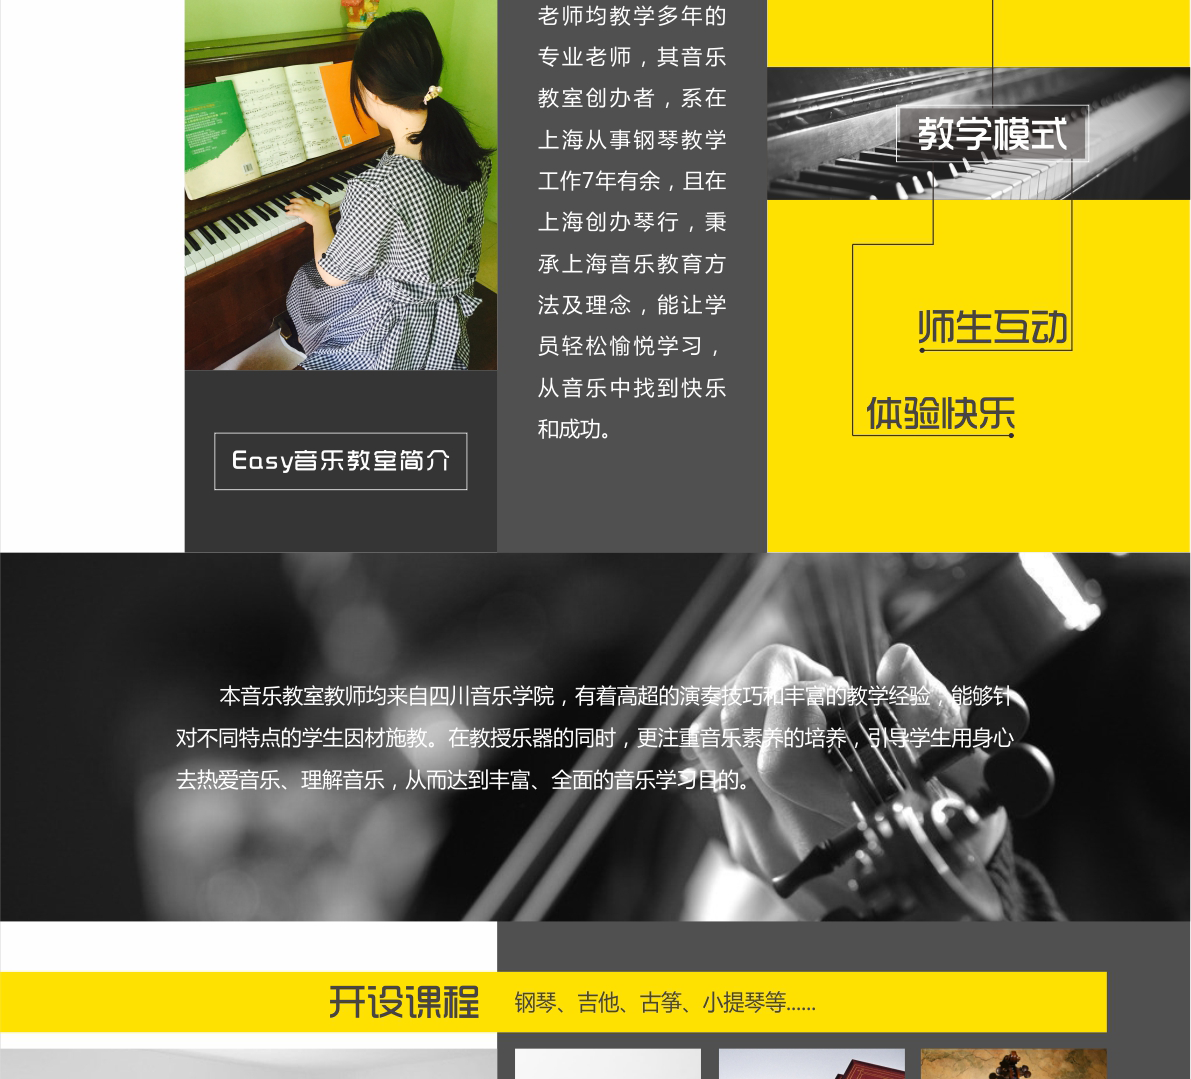 easy音乐教室详情图2016.10_02.png